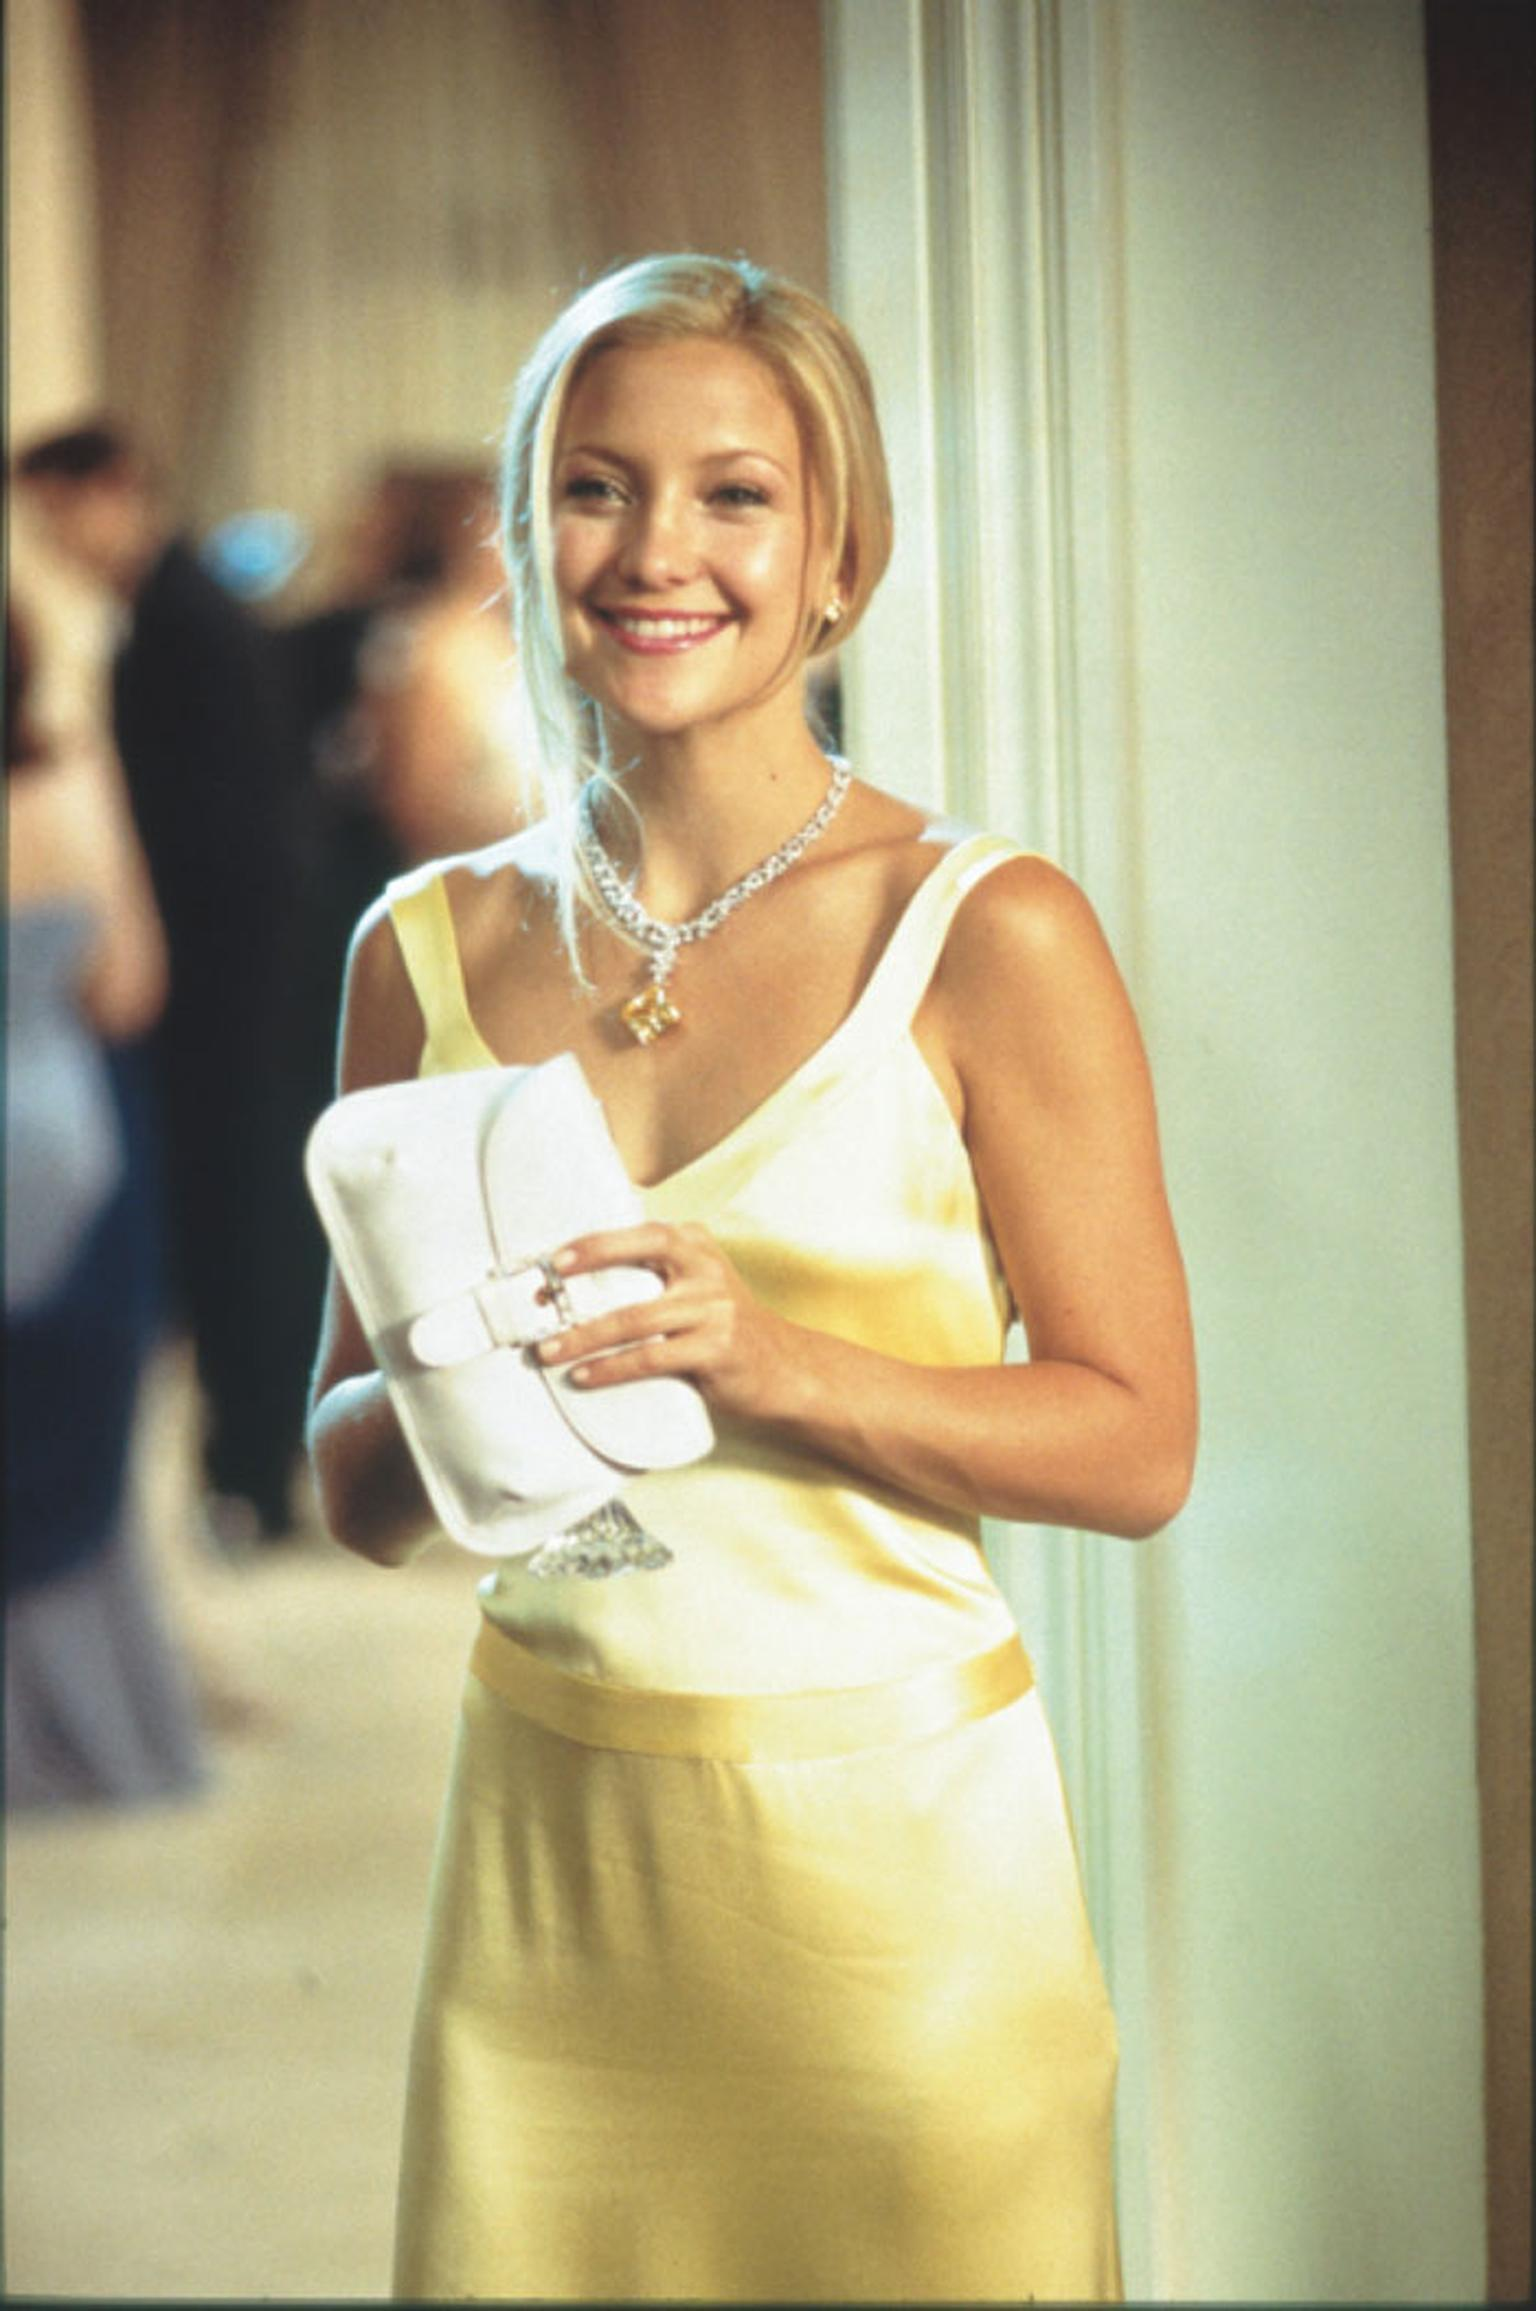 Kate-Hudson-HOW-TO-LOSE-A-GUY-IN-10-DAYS---KATE-HUDSON---MOVIE-STILL.jpg